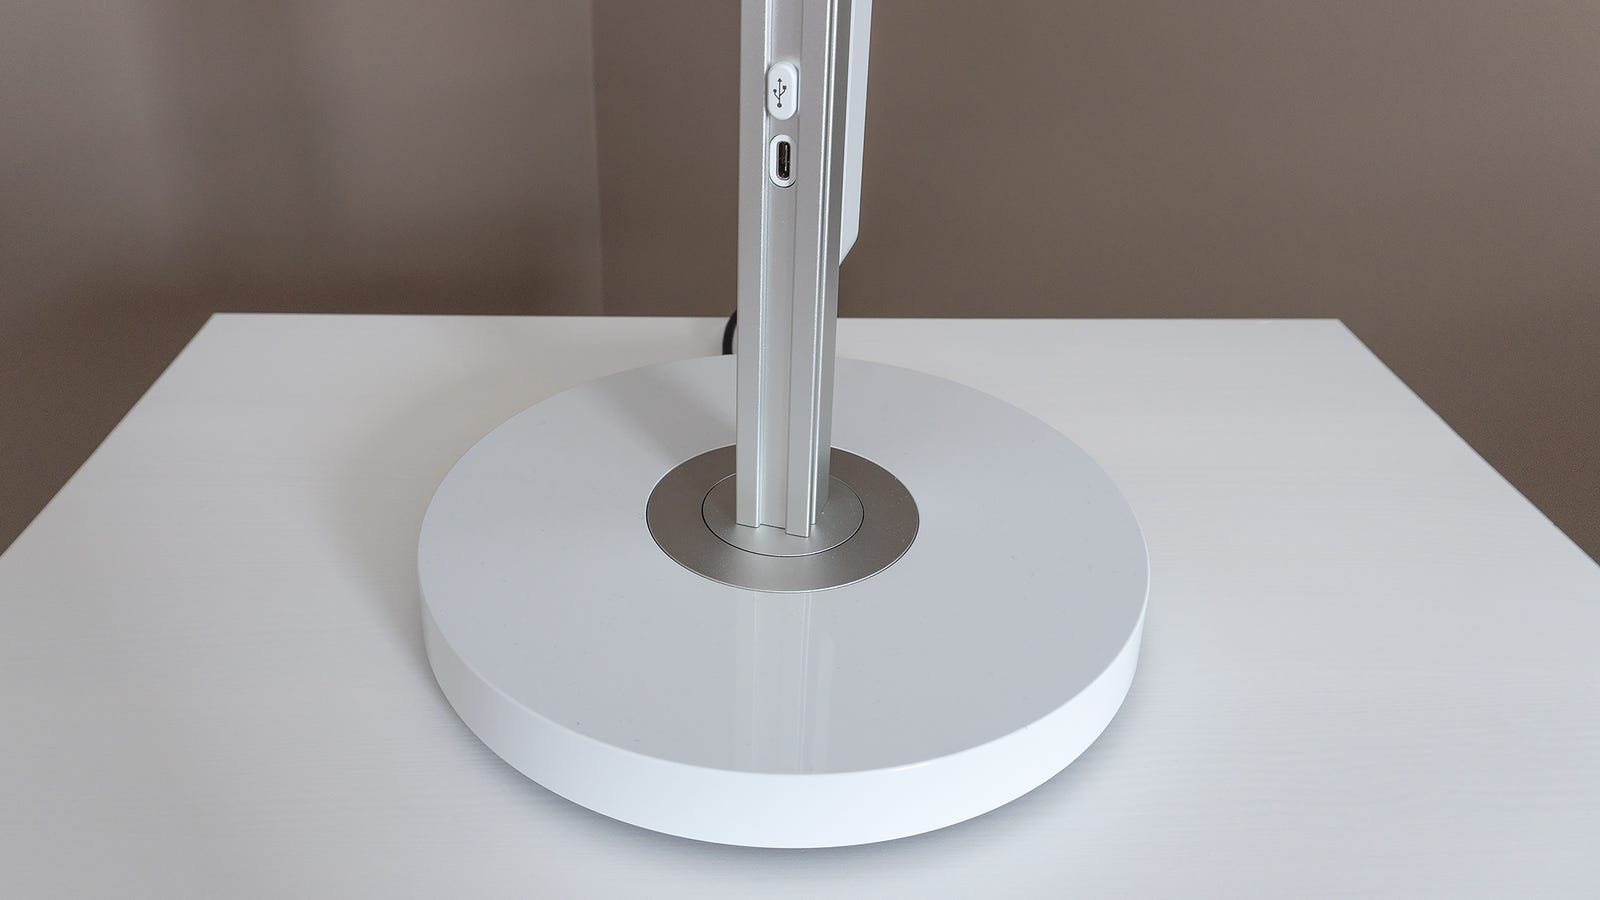 The Lightcycle's base is heavy to prevent topples, and can infinitely spin 360-degrees. It also features a single USB-C port for charing or powering other devices gadgets.